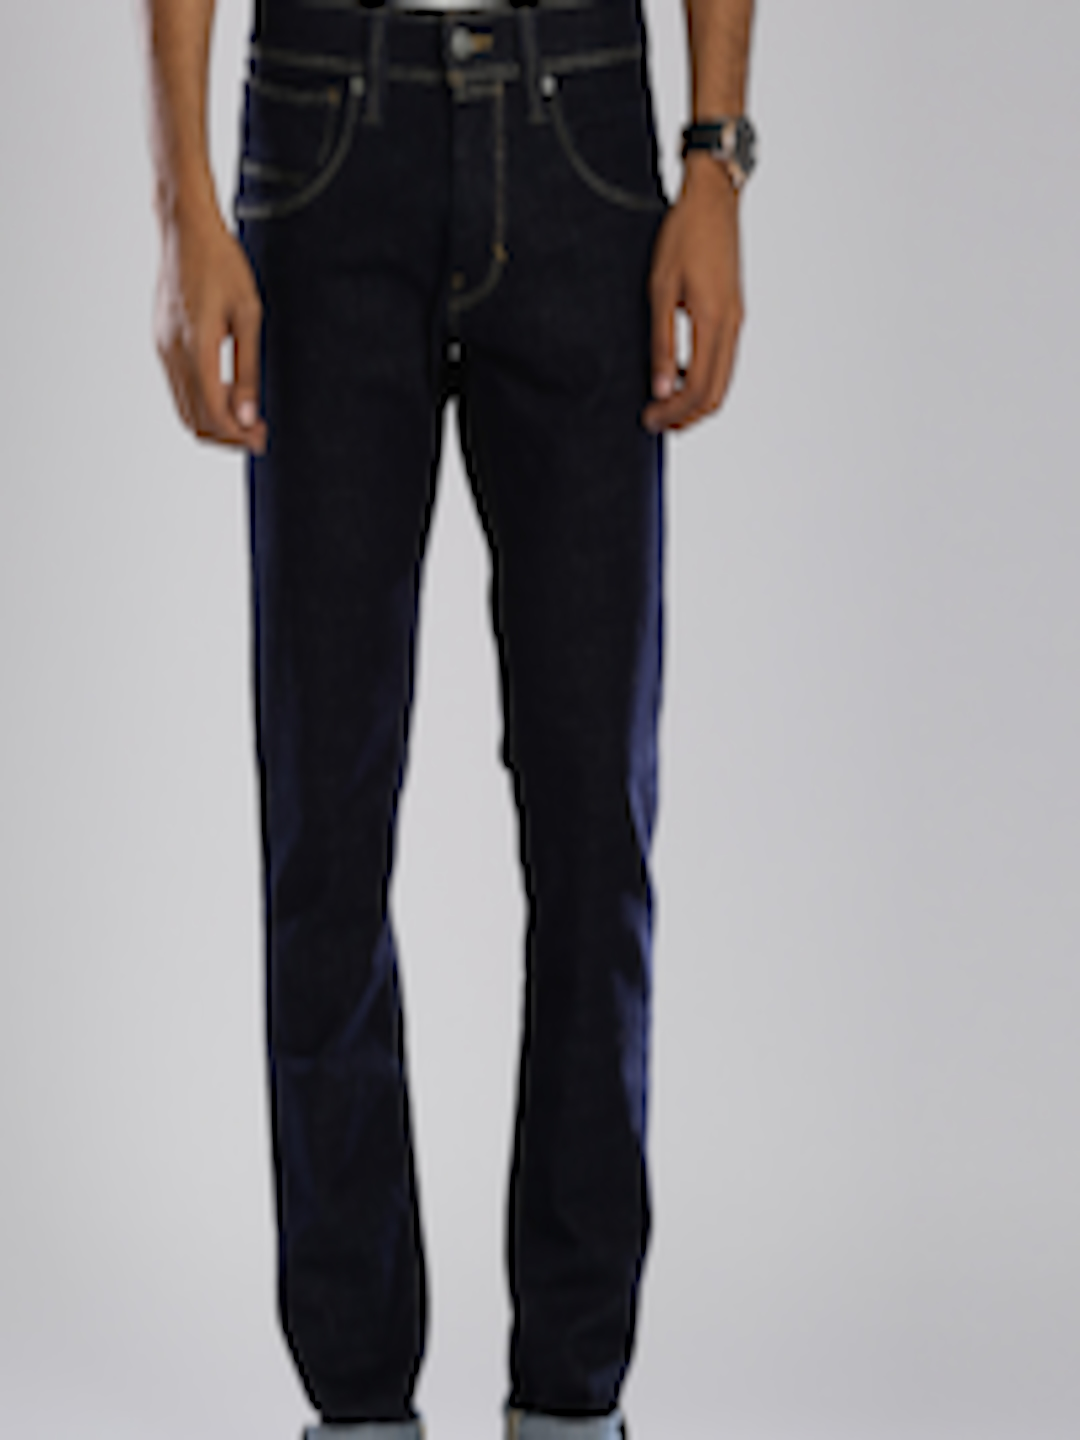 3ec0e23a Buy Levi's Blue Redloop Skinny Straight Stretchable Jeans 65504 - Jeans for  Men 1424086 | Myntra